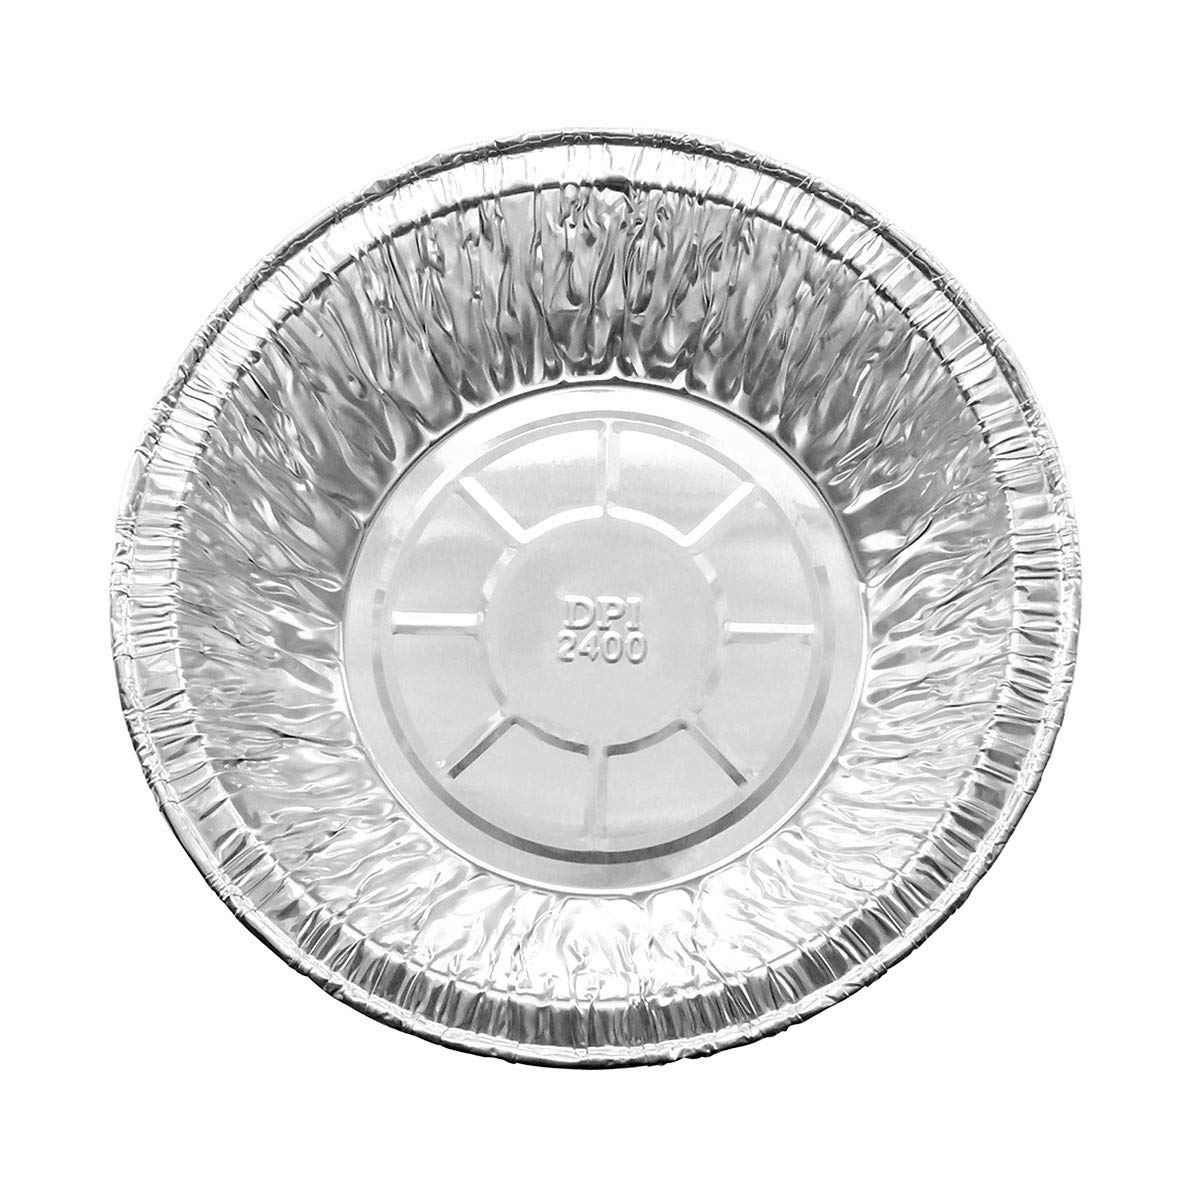 Disposable Aluminum 5 3/4 Extra Deep Meat/Pot Pie Pan #2400 by Durable Packaging (25)